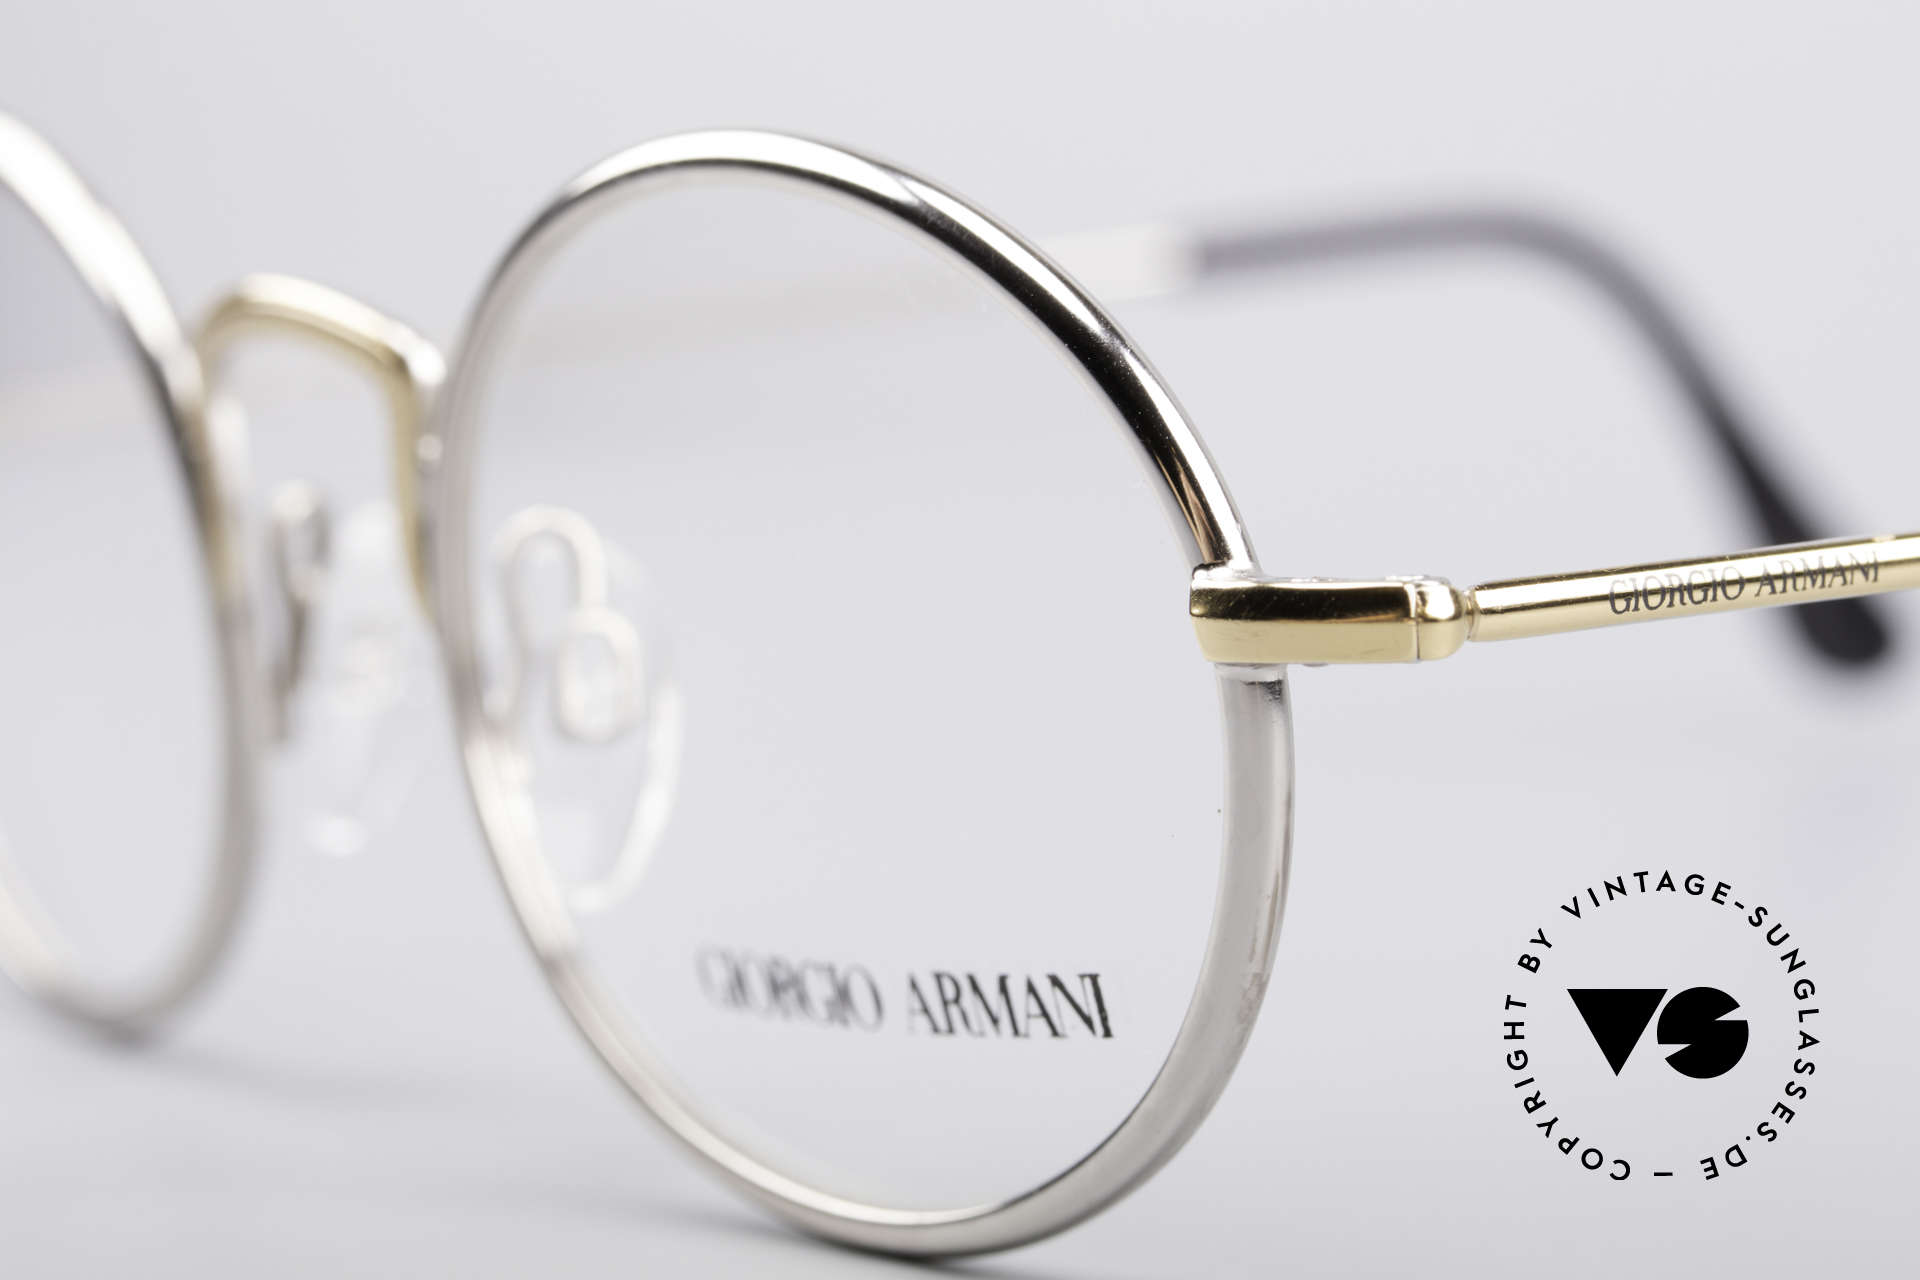 Giorgio Armani 156 Oval Vintage Eyeglasses, never worn (like all our 1980's designer classics), Made for Men and Women